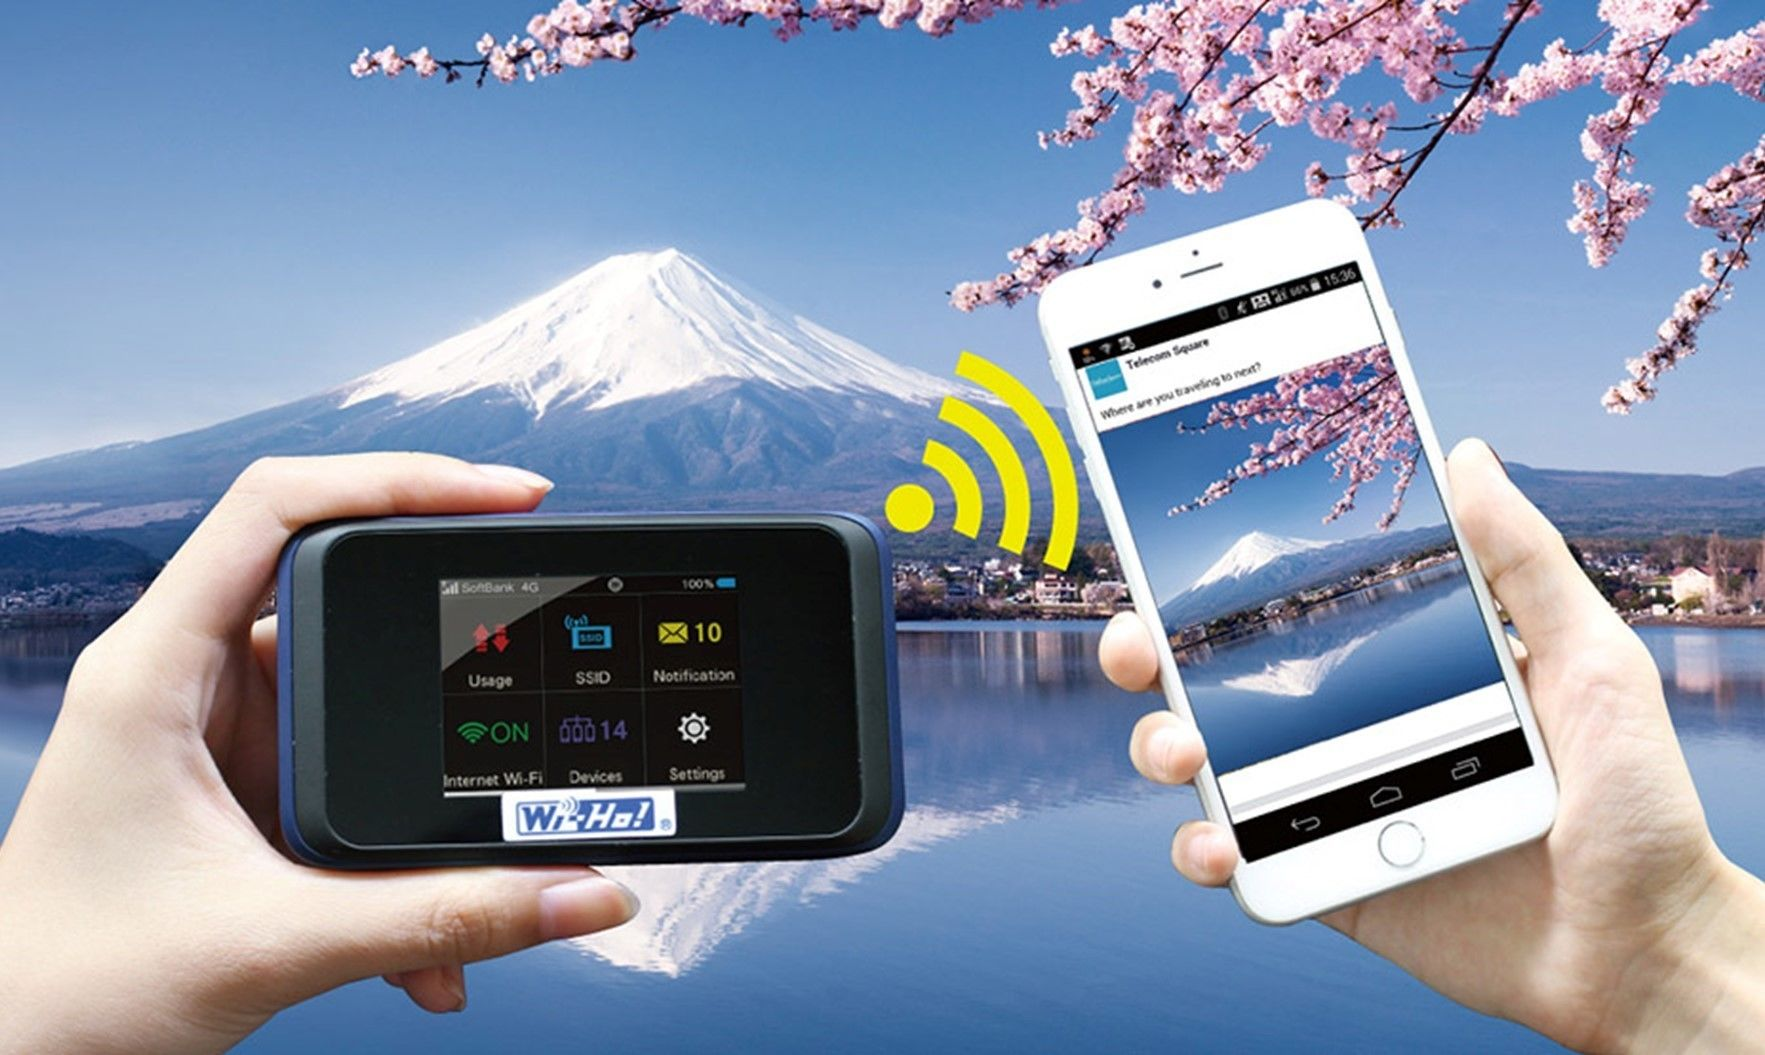 WiFi Router Hire from Narita International Airport